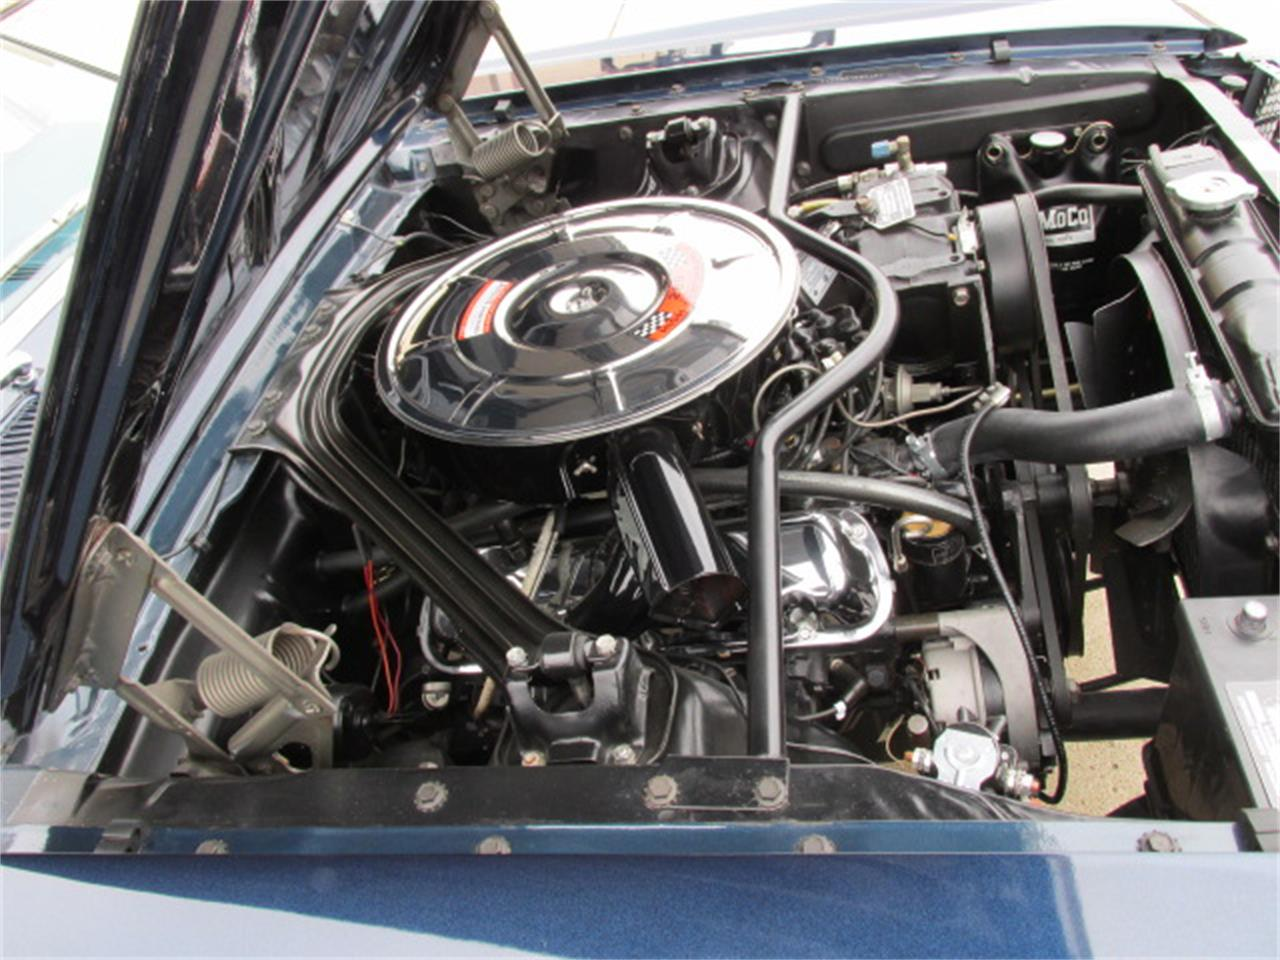 Large Picture of Classic '65 Ford Mustang located in Illinois - $48,000.00 Offered by a Private Seller - P1IH